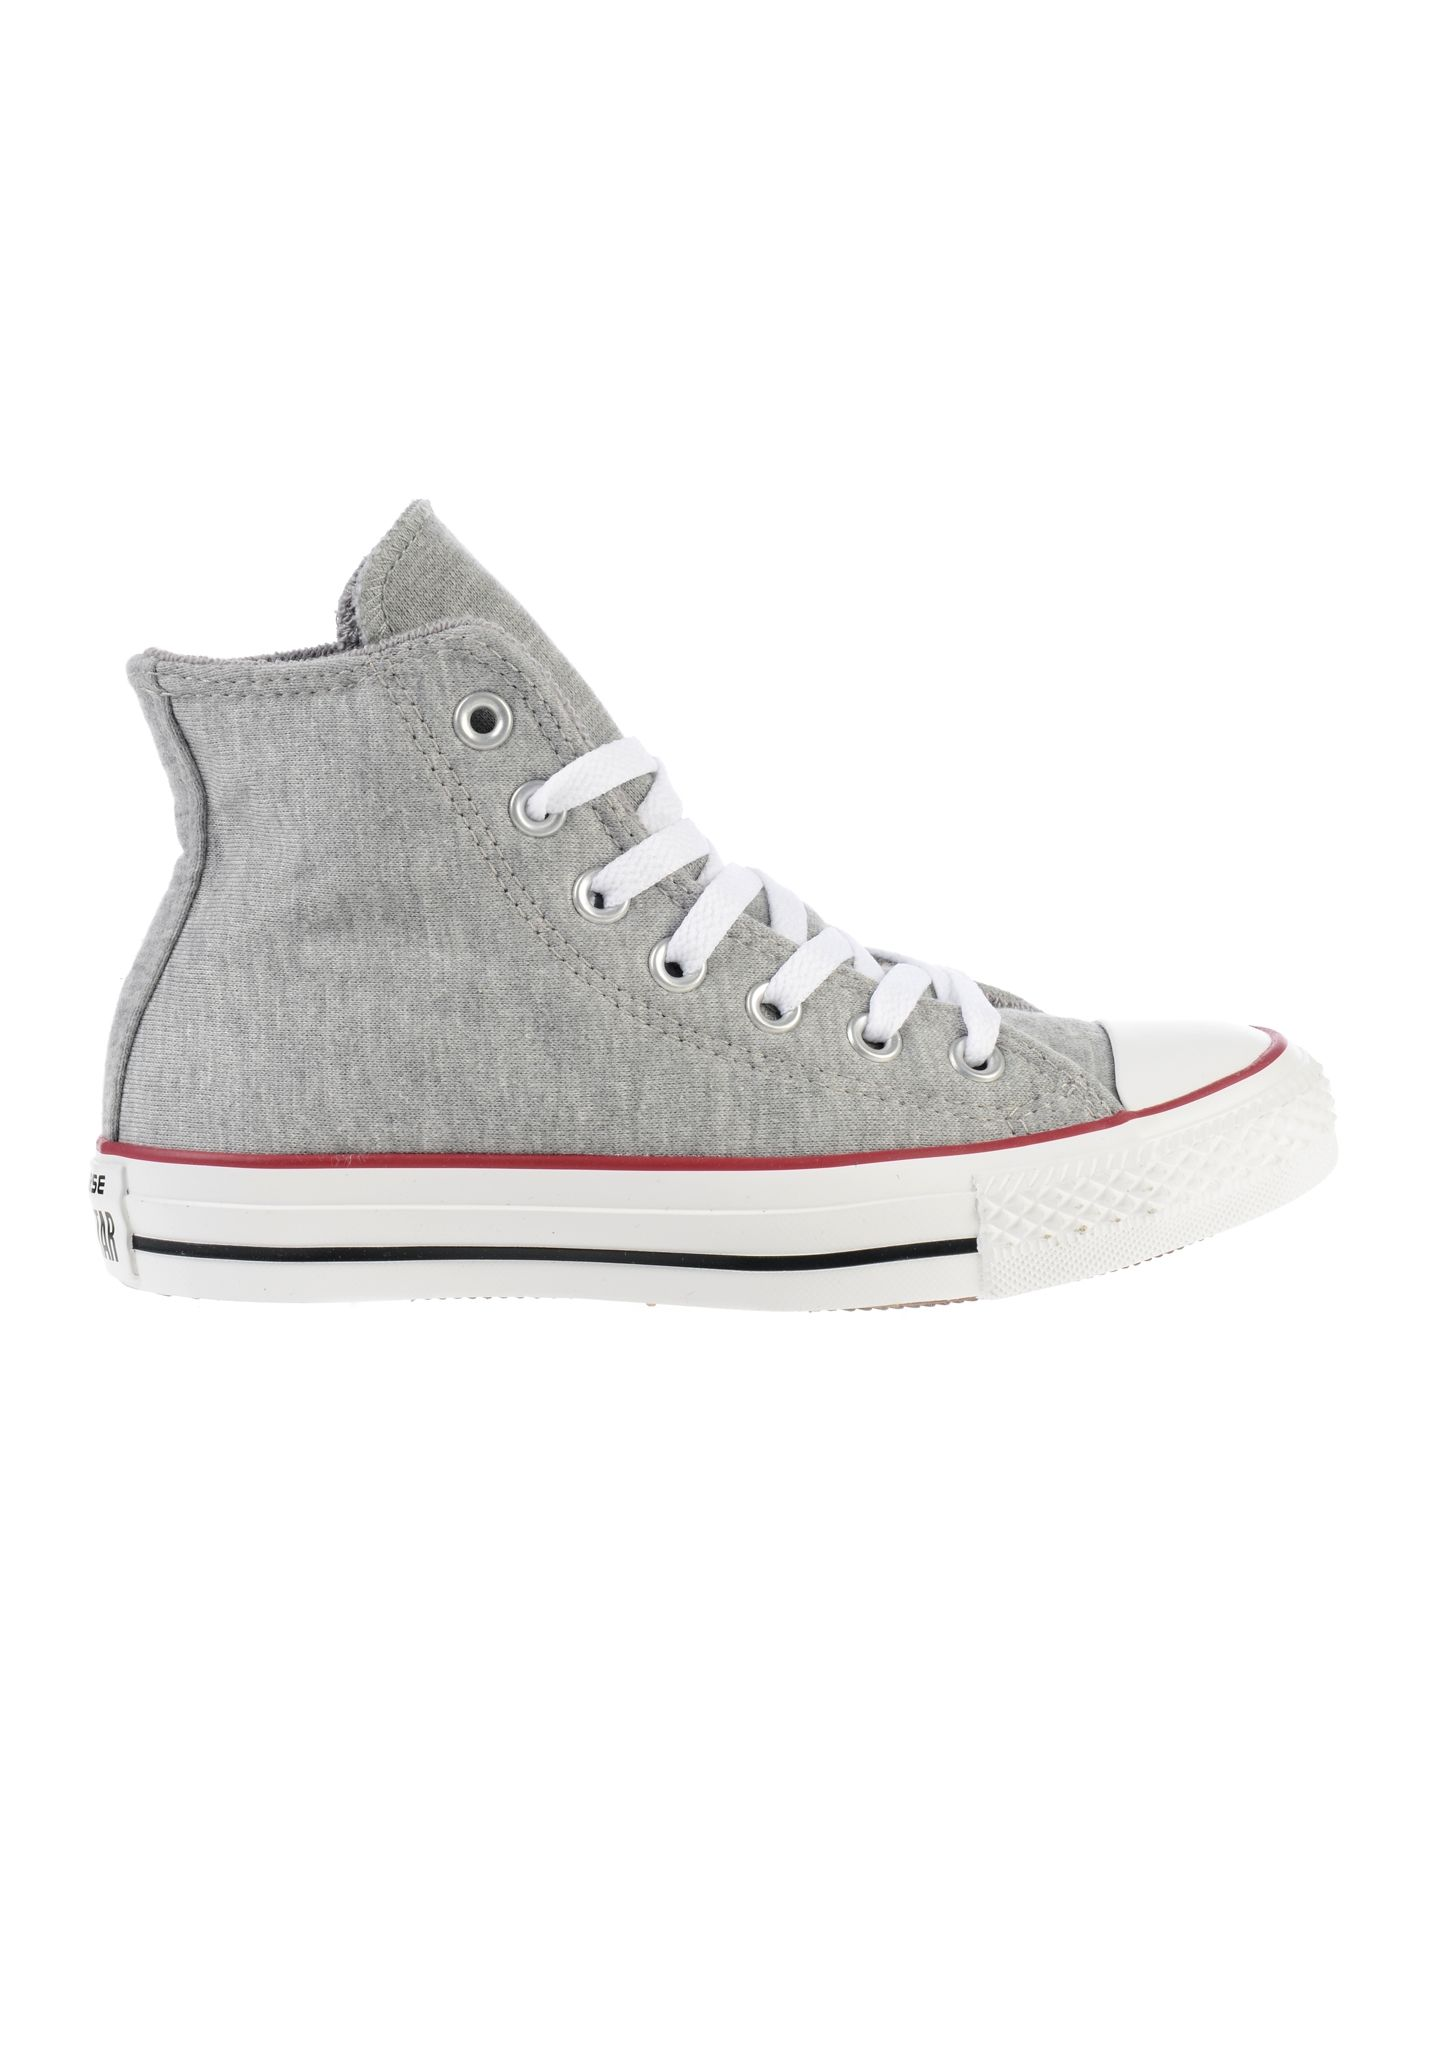 factory authentic 8fb56 25273 low cost converse chucks grau 2fda0 8af10